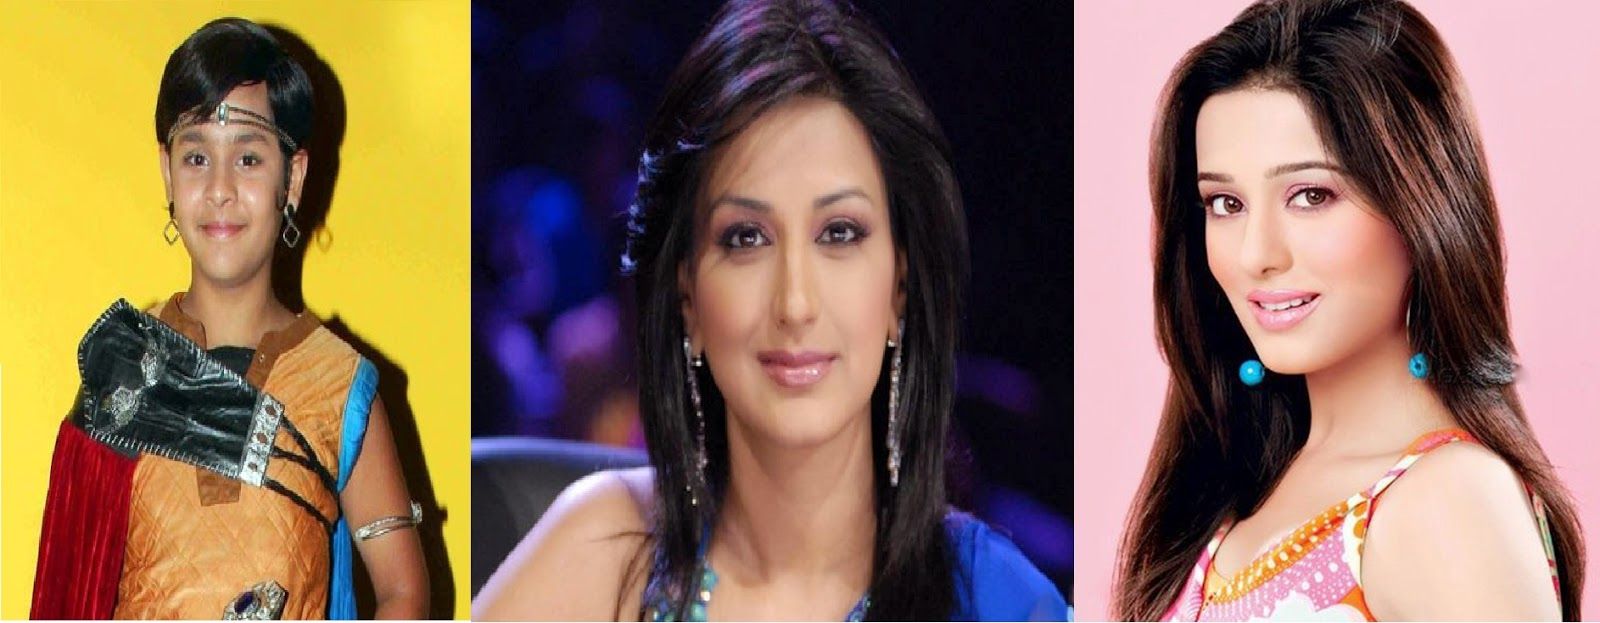 Amrita Rao and Sonali Bendre may Play Negative role in BaalVeer